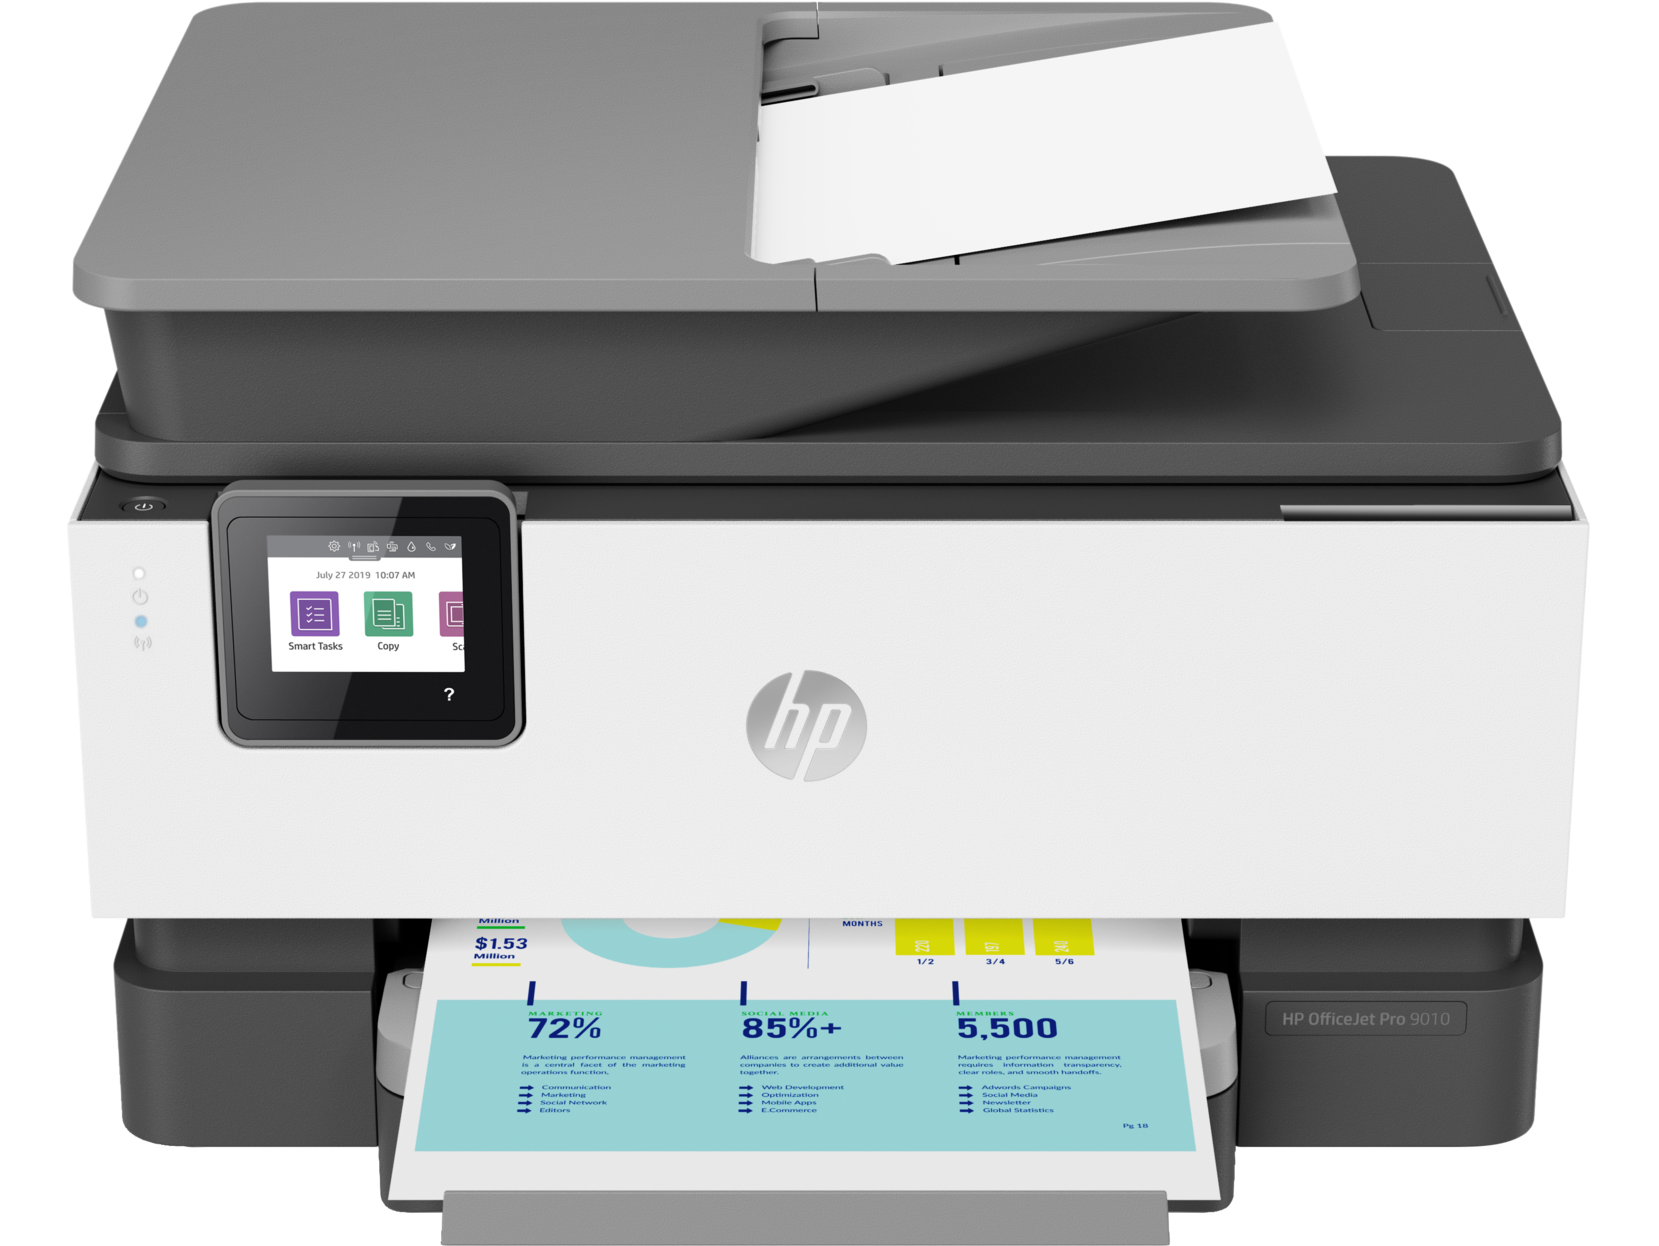 МФУ HP OfficeJet Pro 9010 3UK83A